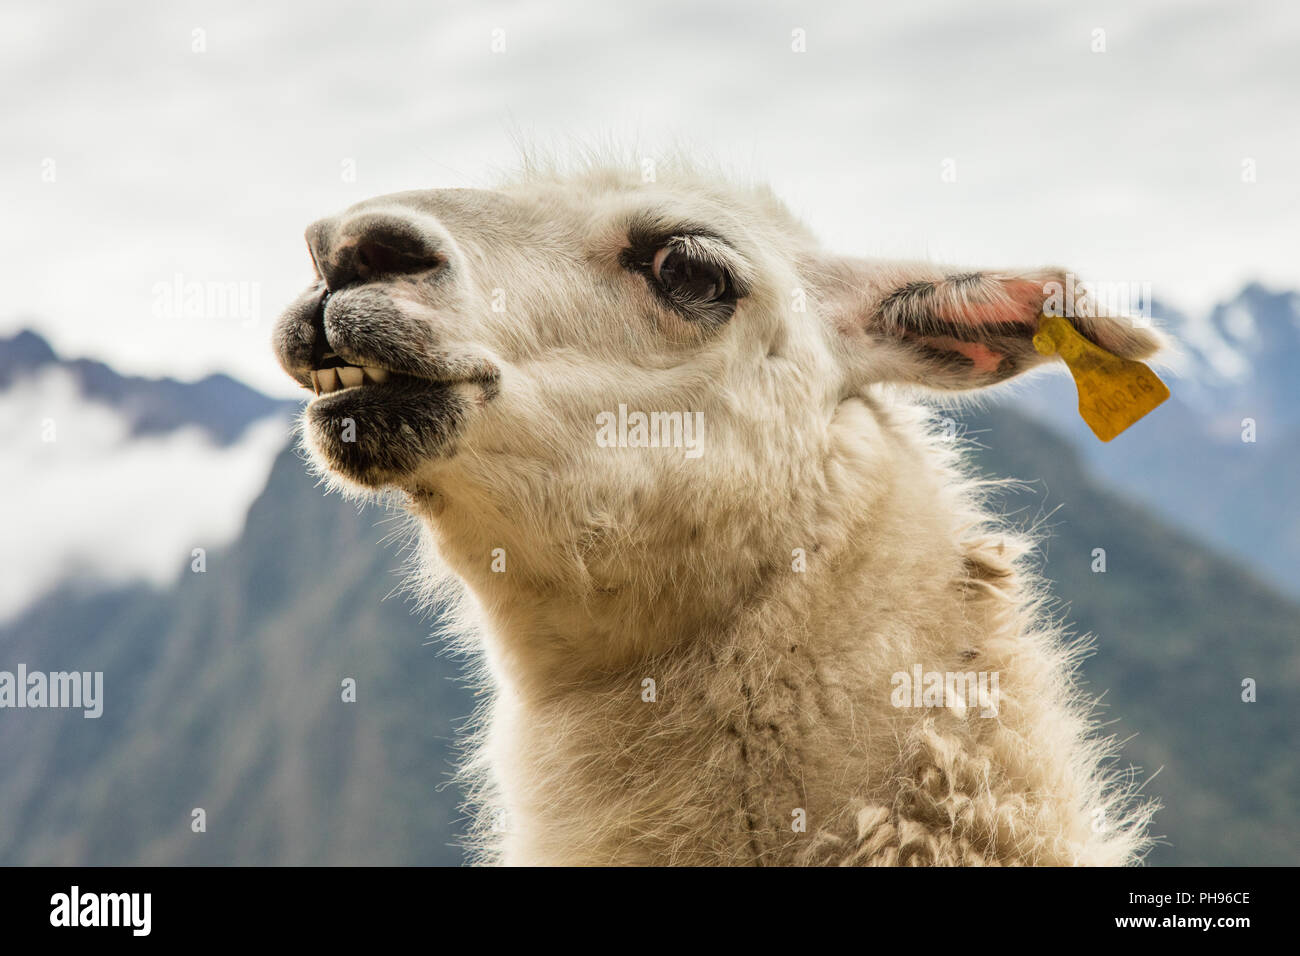 Close up of Llama. Winay Wanna Incan Ruins, Inca Trail, Peru. - Stock Image